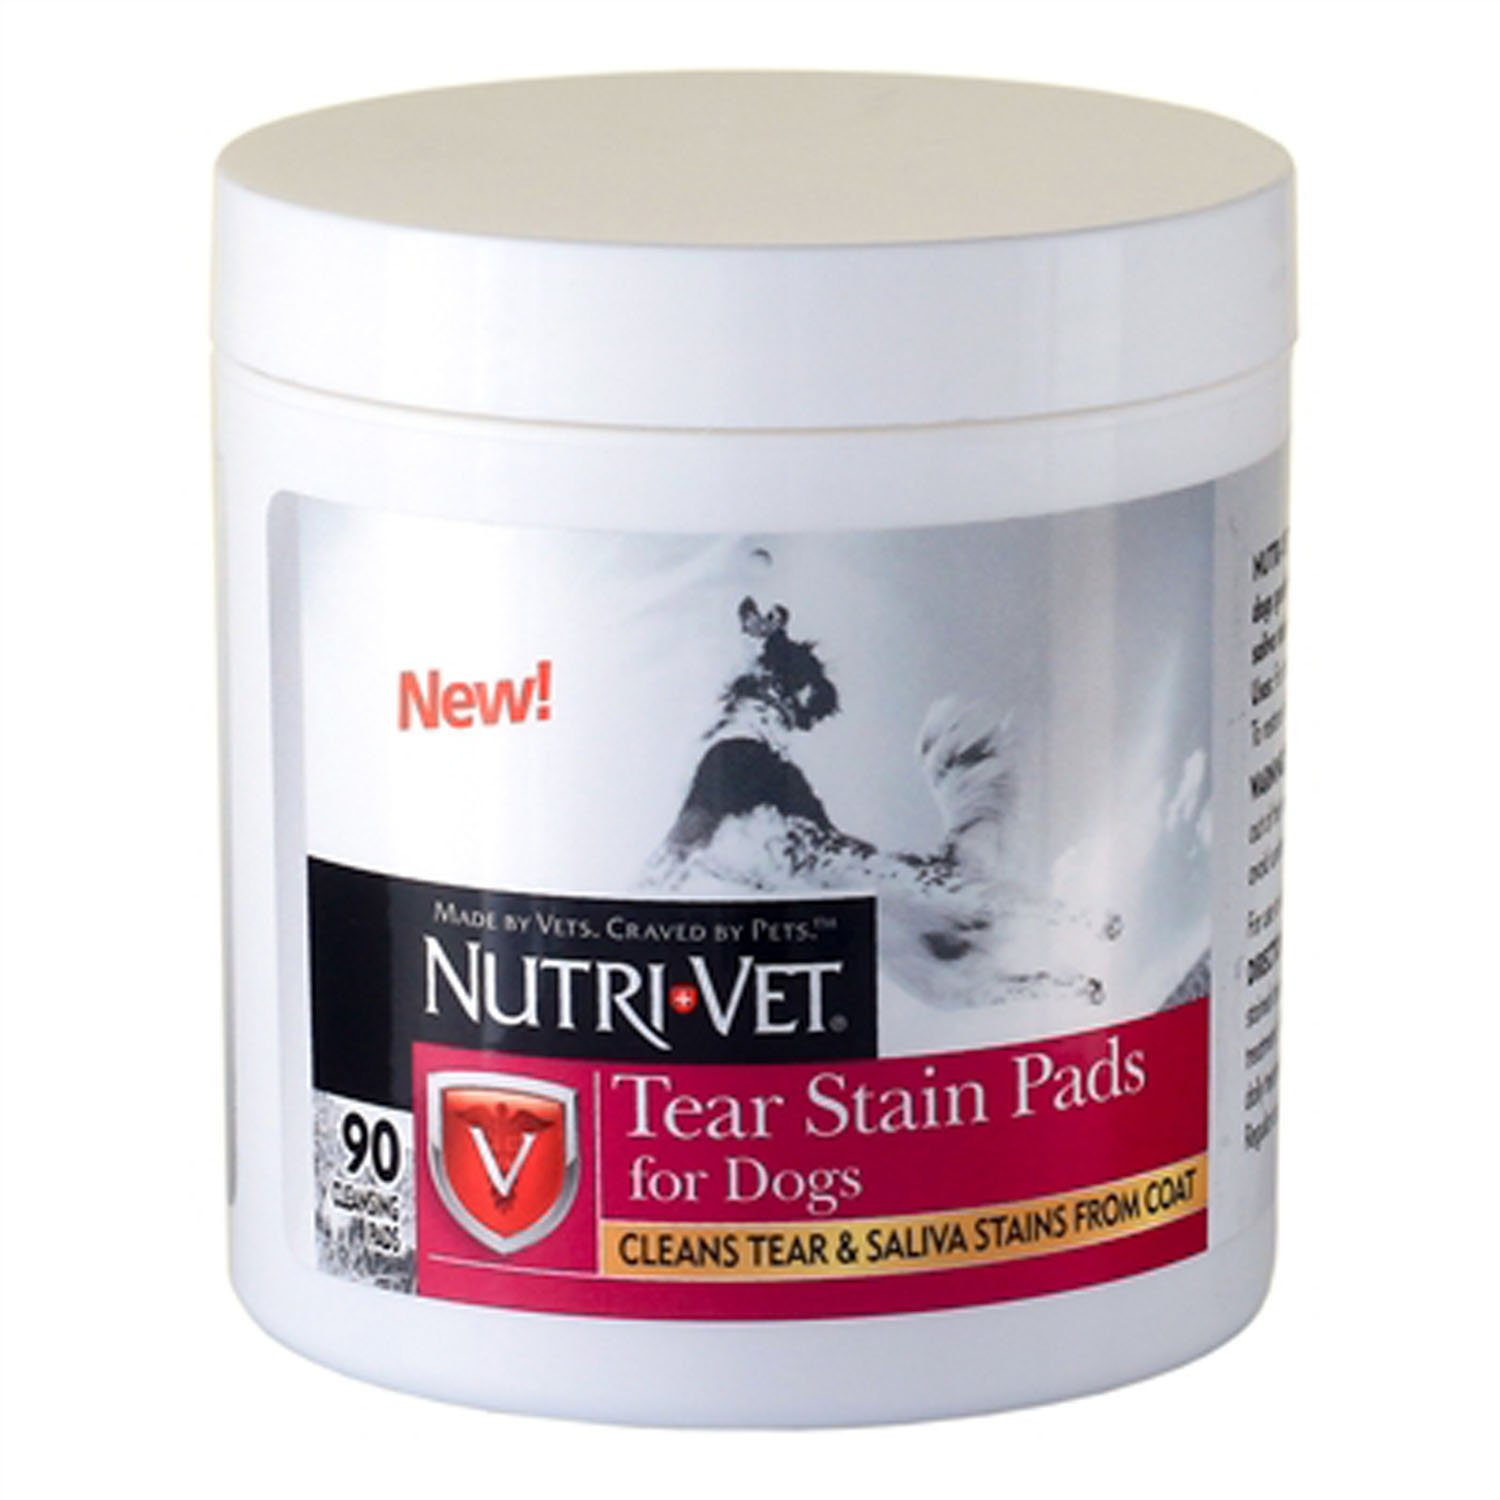 Nutri-Vet Dog Eye Wipes Tear Stain Remover Pads 90 Count Cleans Tear and Saliva Stains from Coat